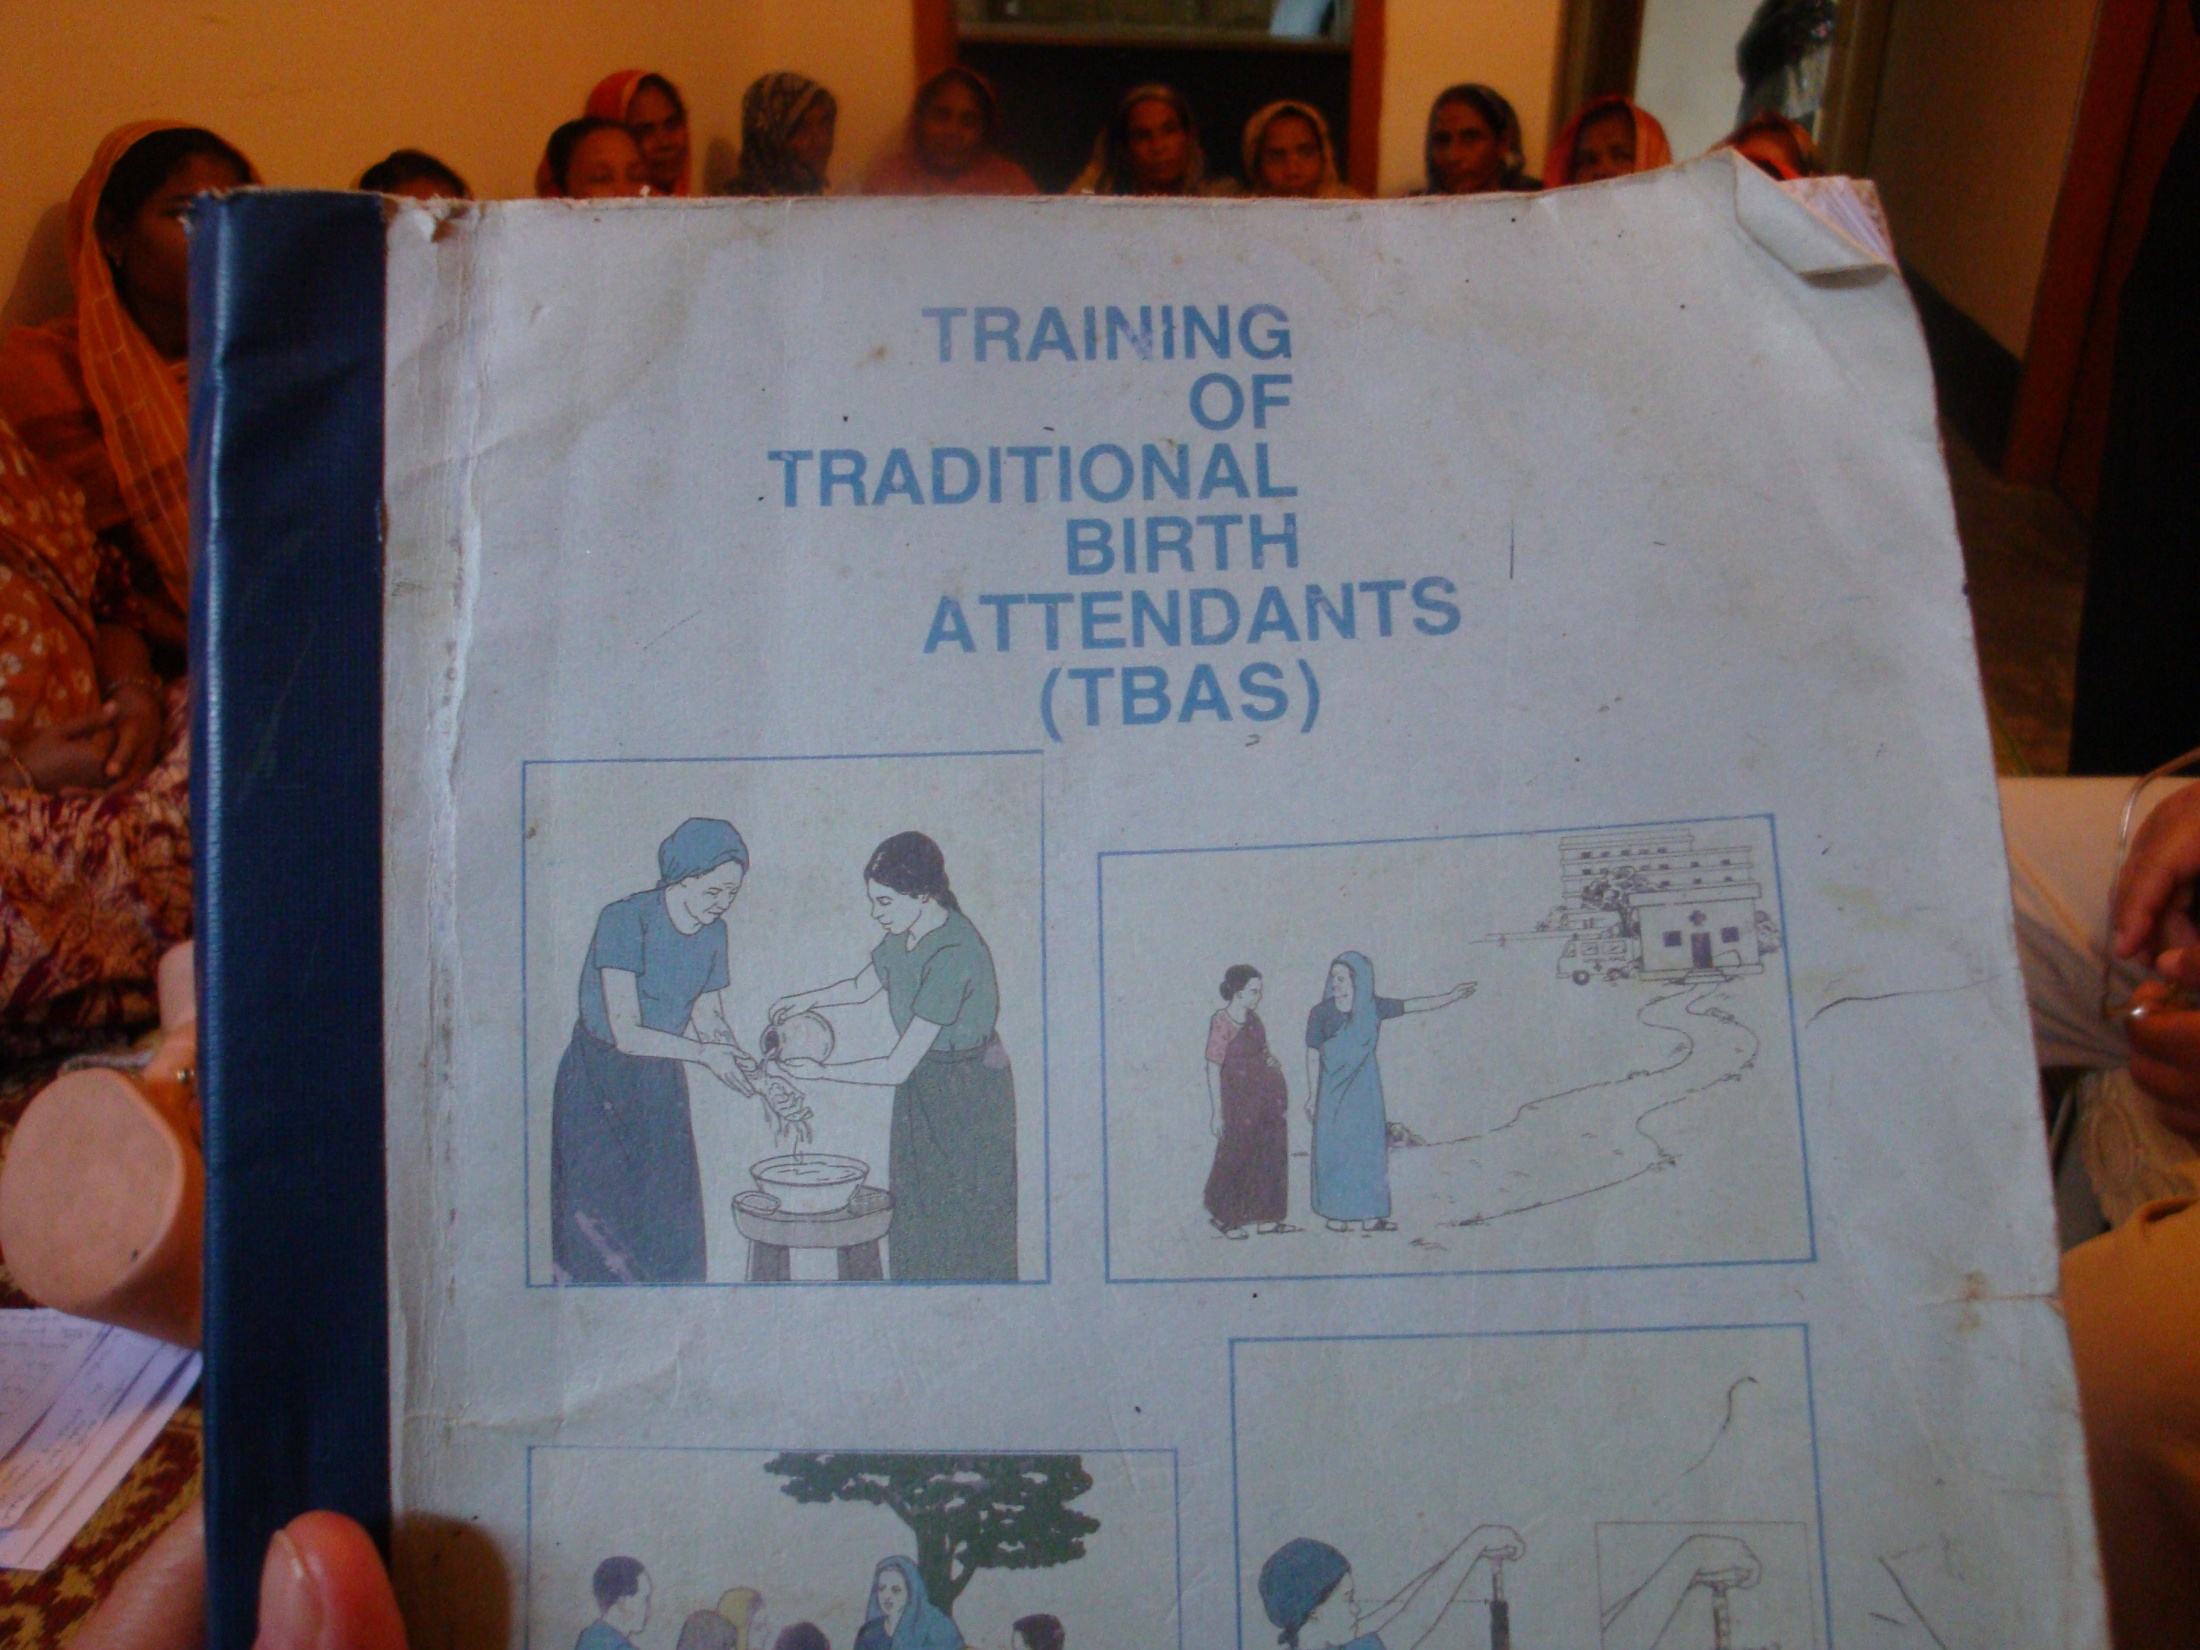 Traditional Birth Attendant (TBA) Training - 92% of pregnant women in Bangladesh deliver at home unattended by skilled personnel. LHCB started TBA training in 1996 and has trained over 300 TBAs to assist mothers in their villages with safe child birth. In addition to delivering babies, the TBAs work with mothers before and after delivery, instructing them in appropriate health care, immunizations, and infant care. They monitor the pregnant mothers and refer those women with high risk pregnancies to the hospital in Dumki for delivery under close supervision.